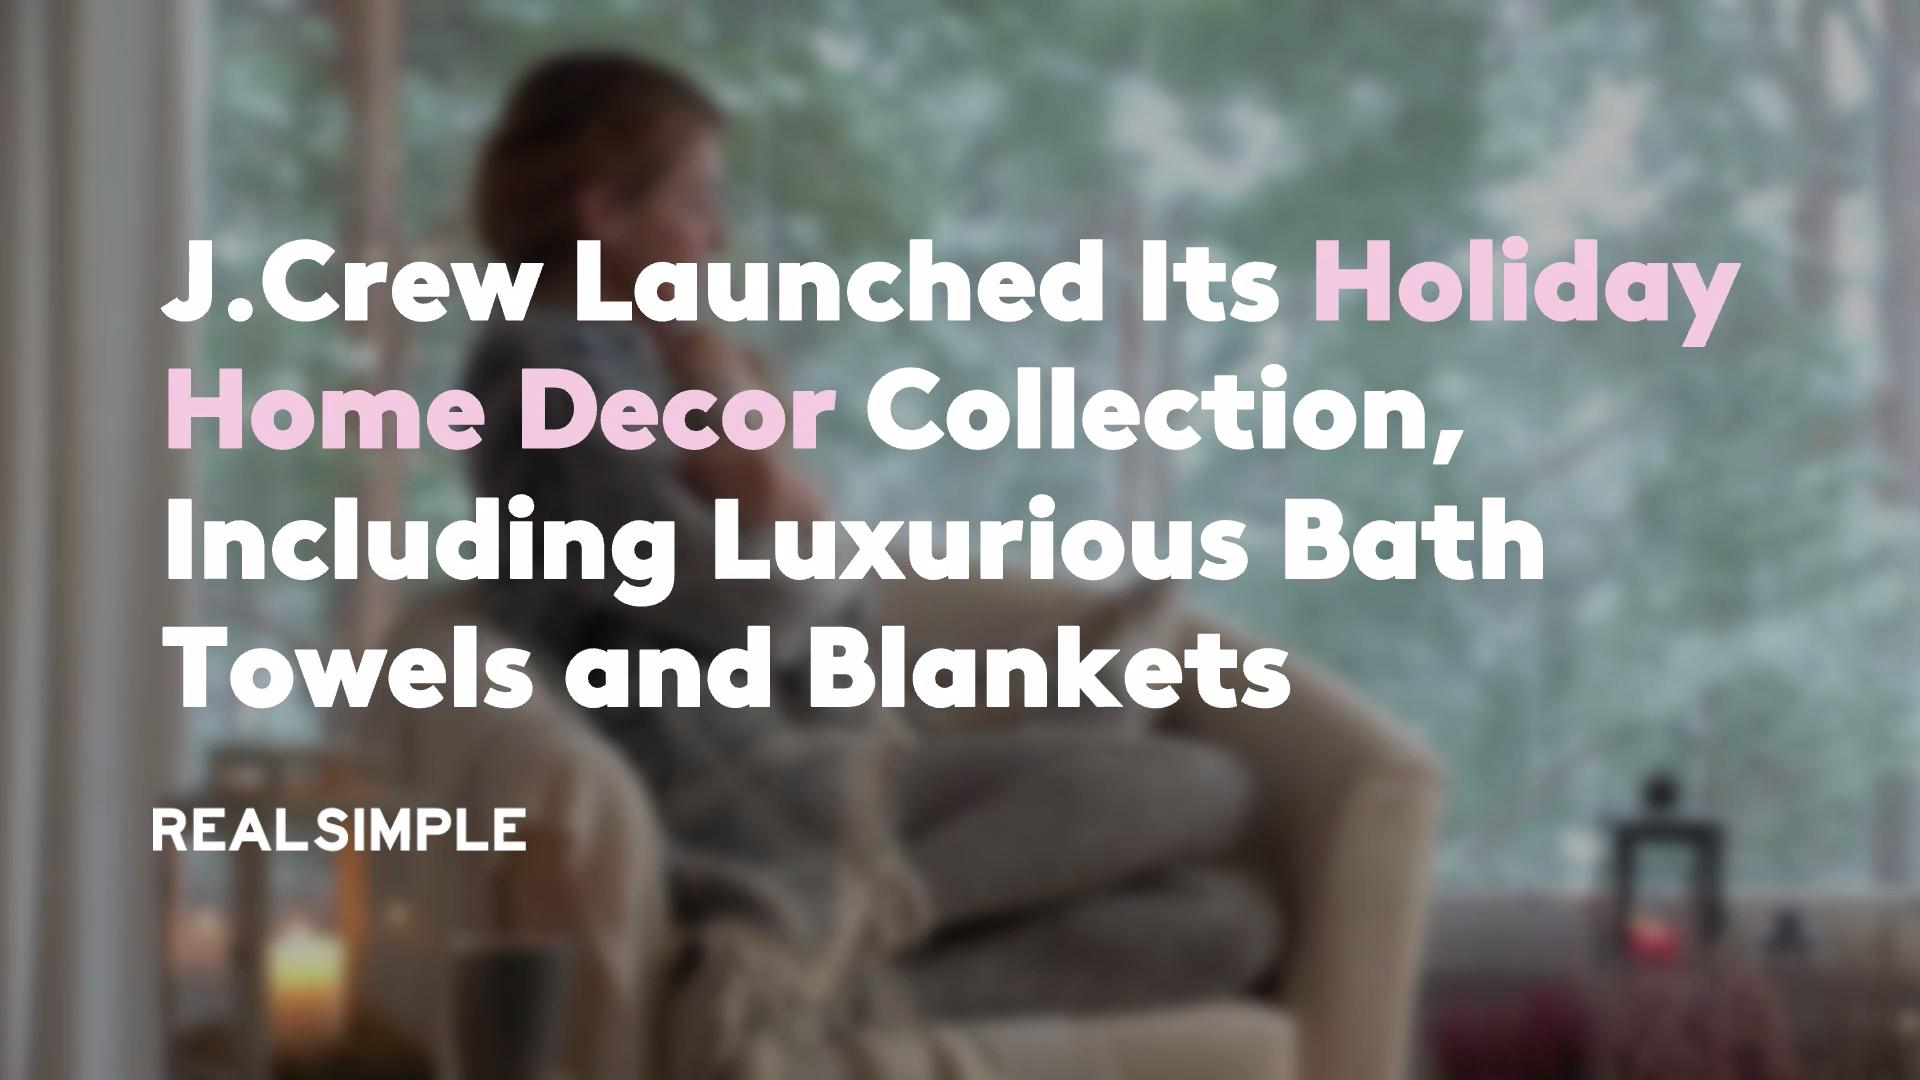 J.Crew Launched Its Holiday Home Decor Collection—Including Luxurious Bath Towels and Blankets